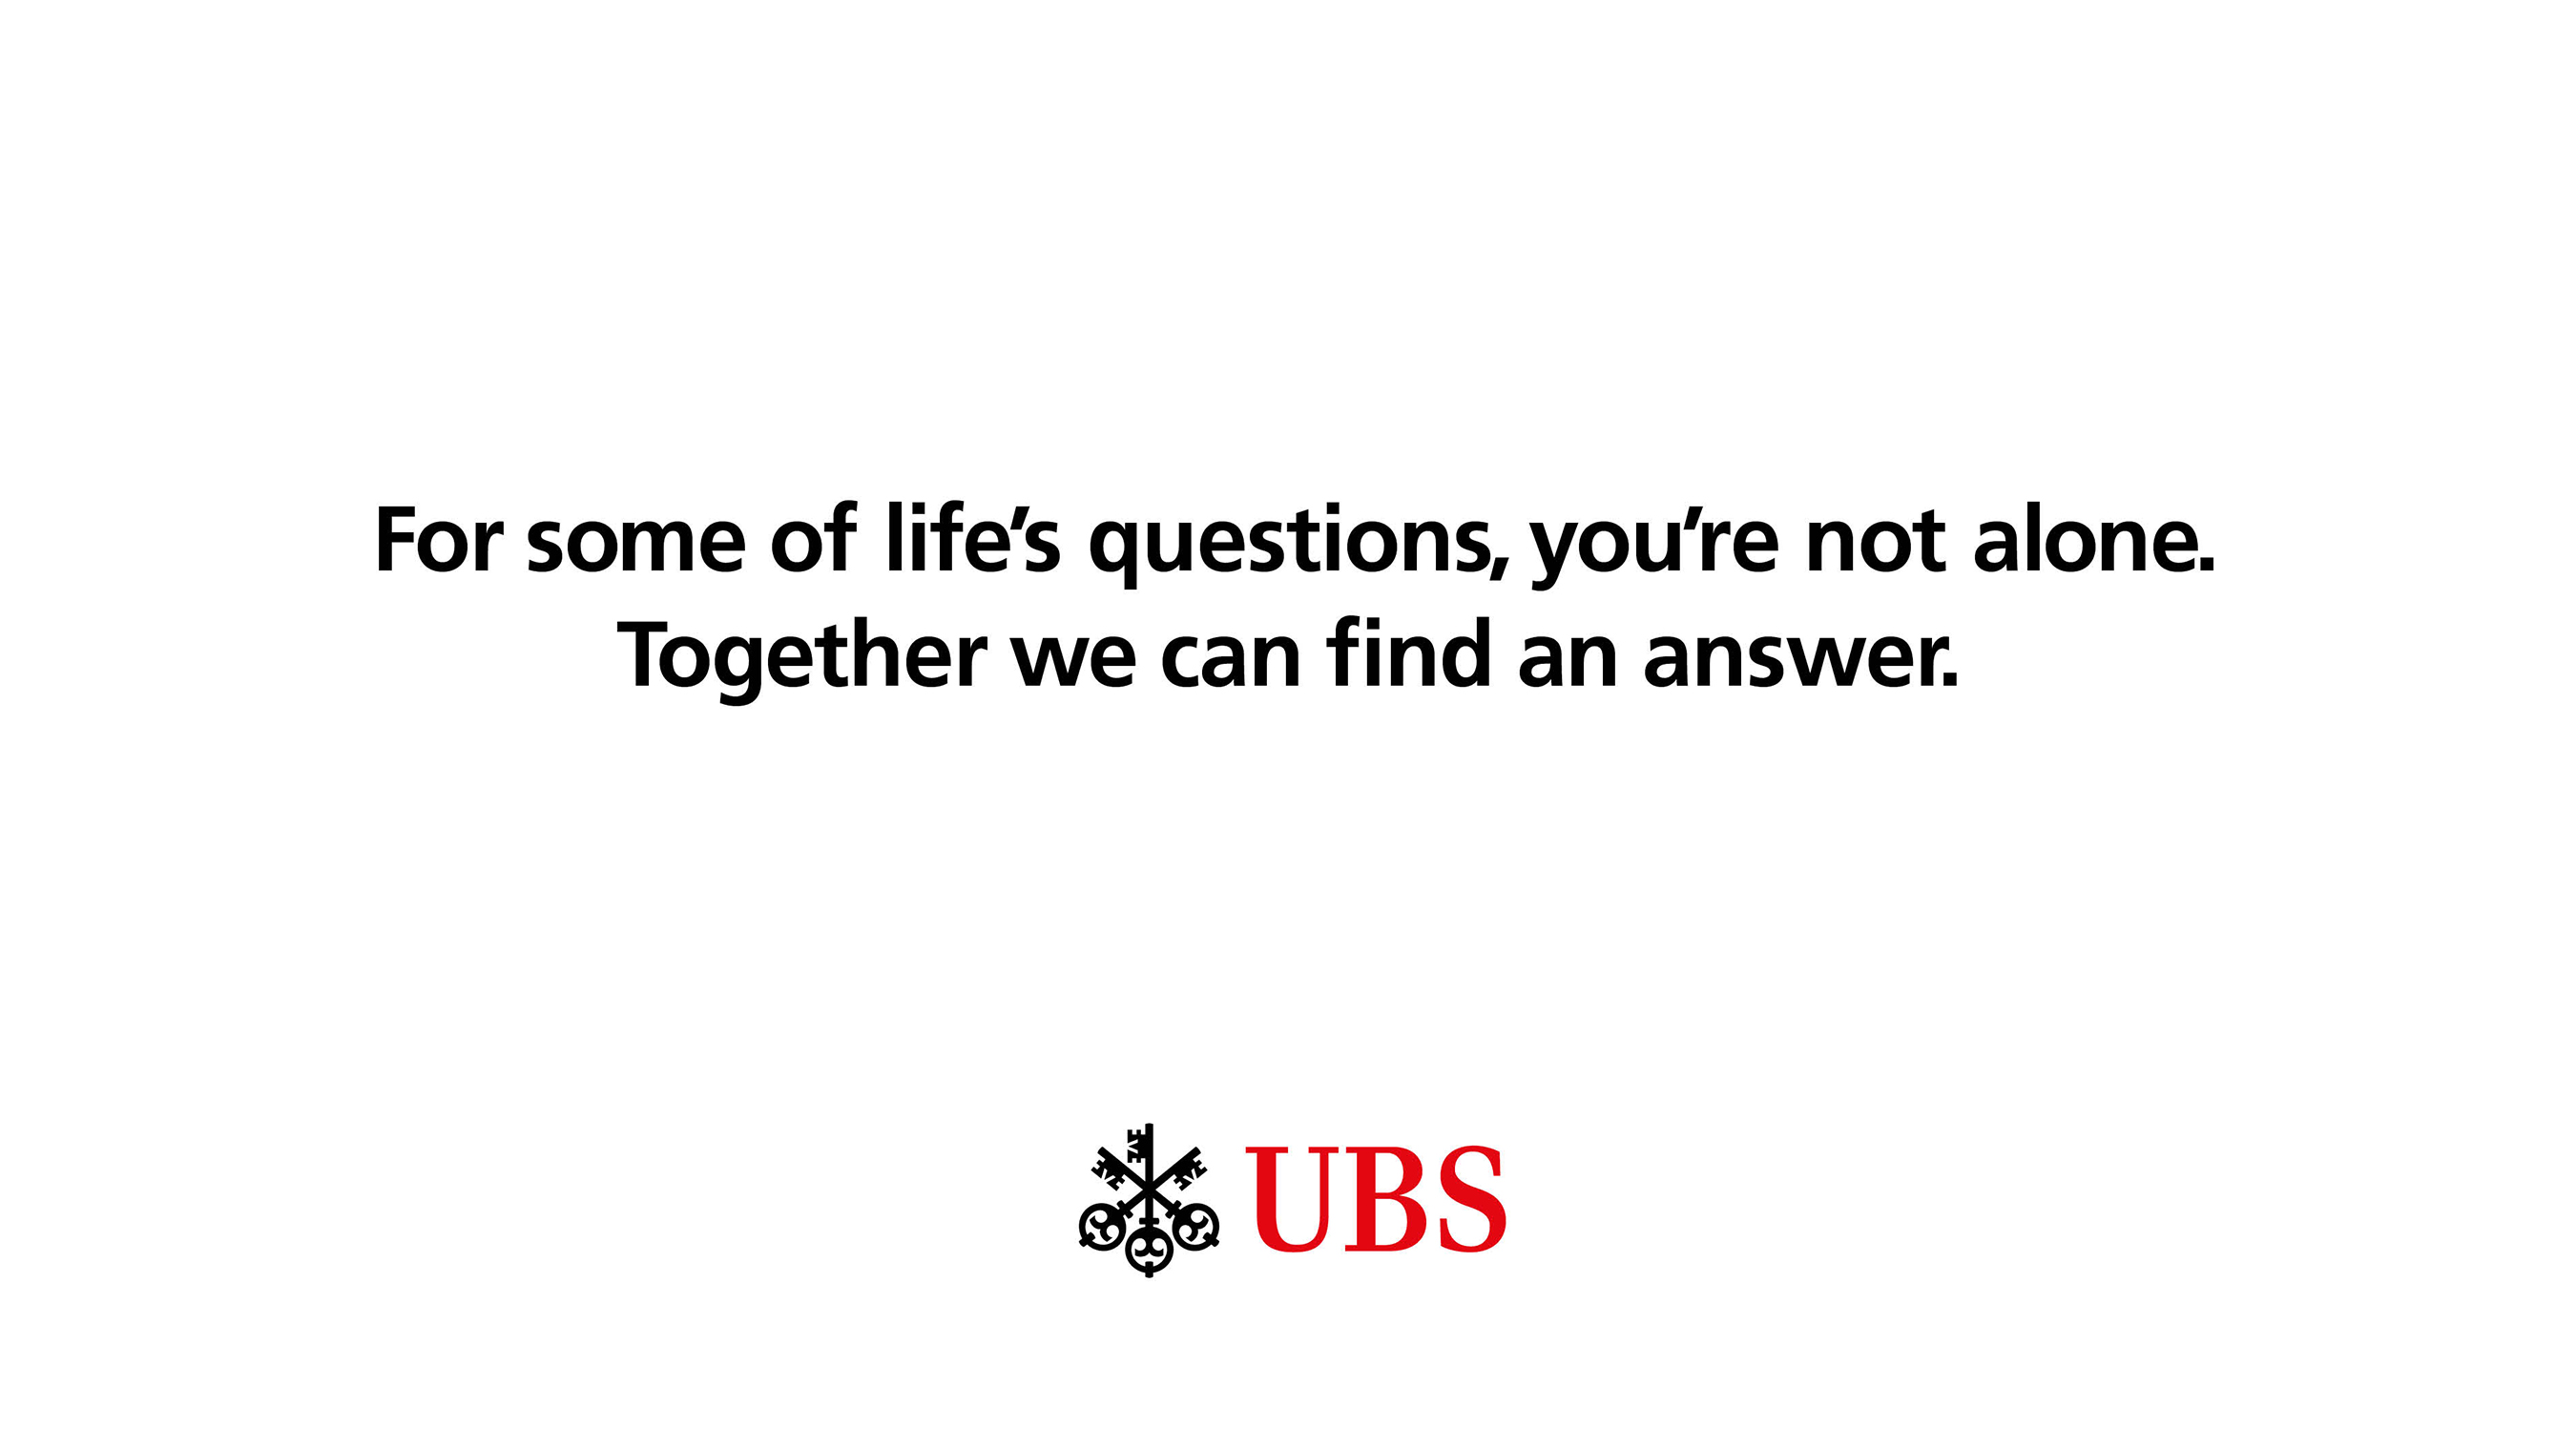 UBS launches global brand campaign (1)